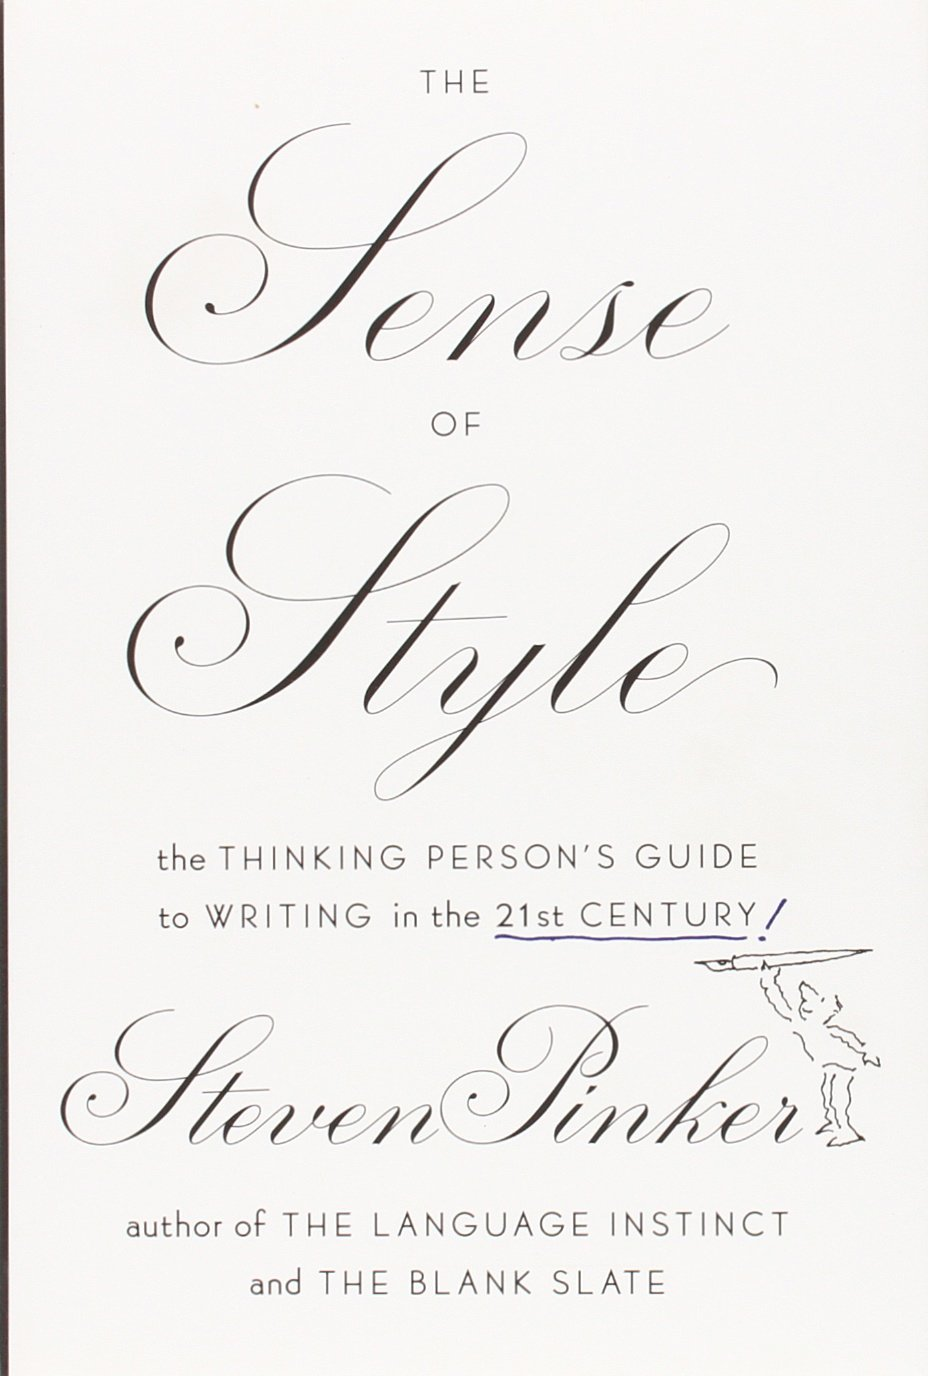 The Sense of Style: The Thinking Person's Guide to Writing in the 21st Century by Steven Pinker